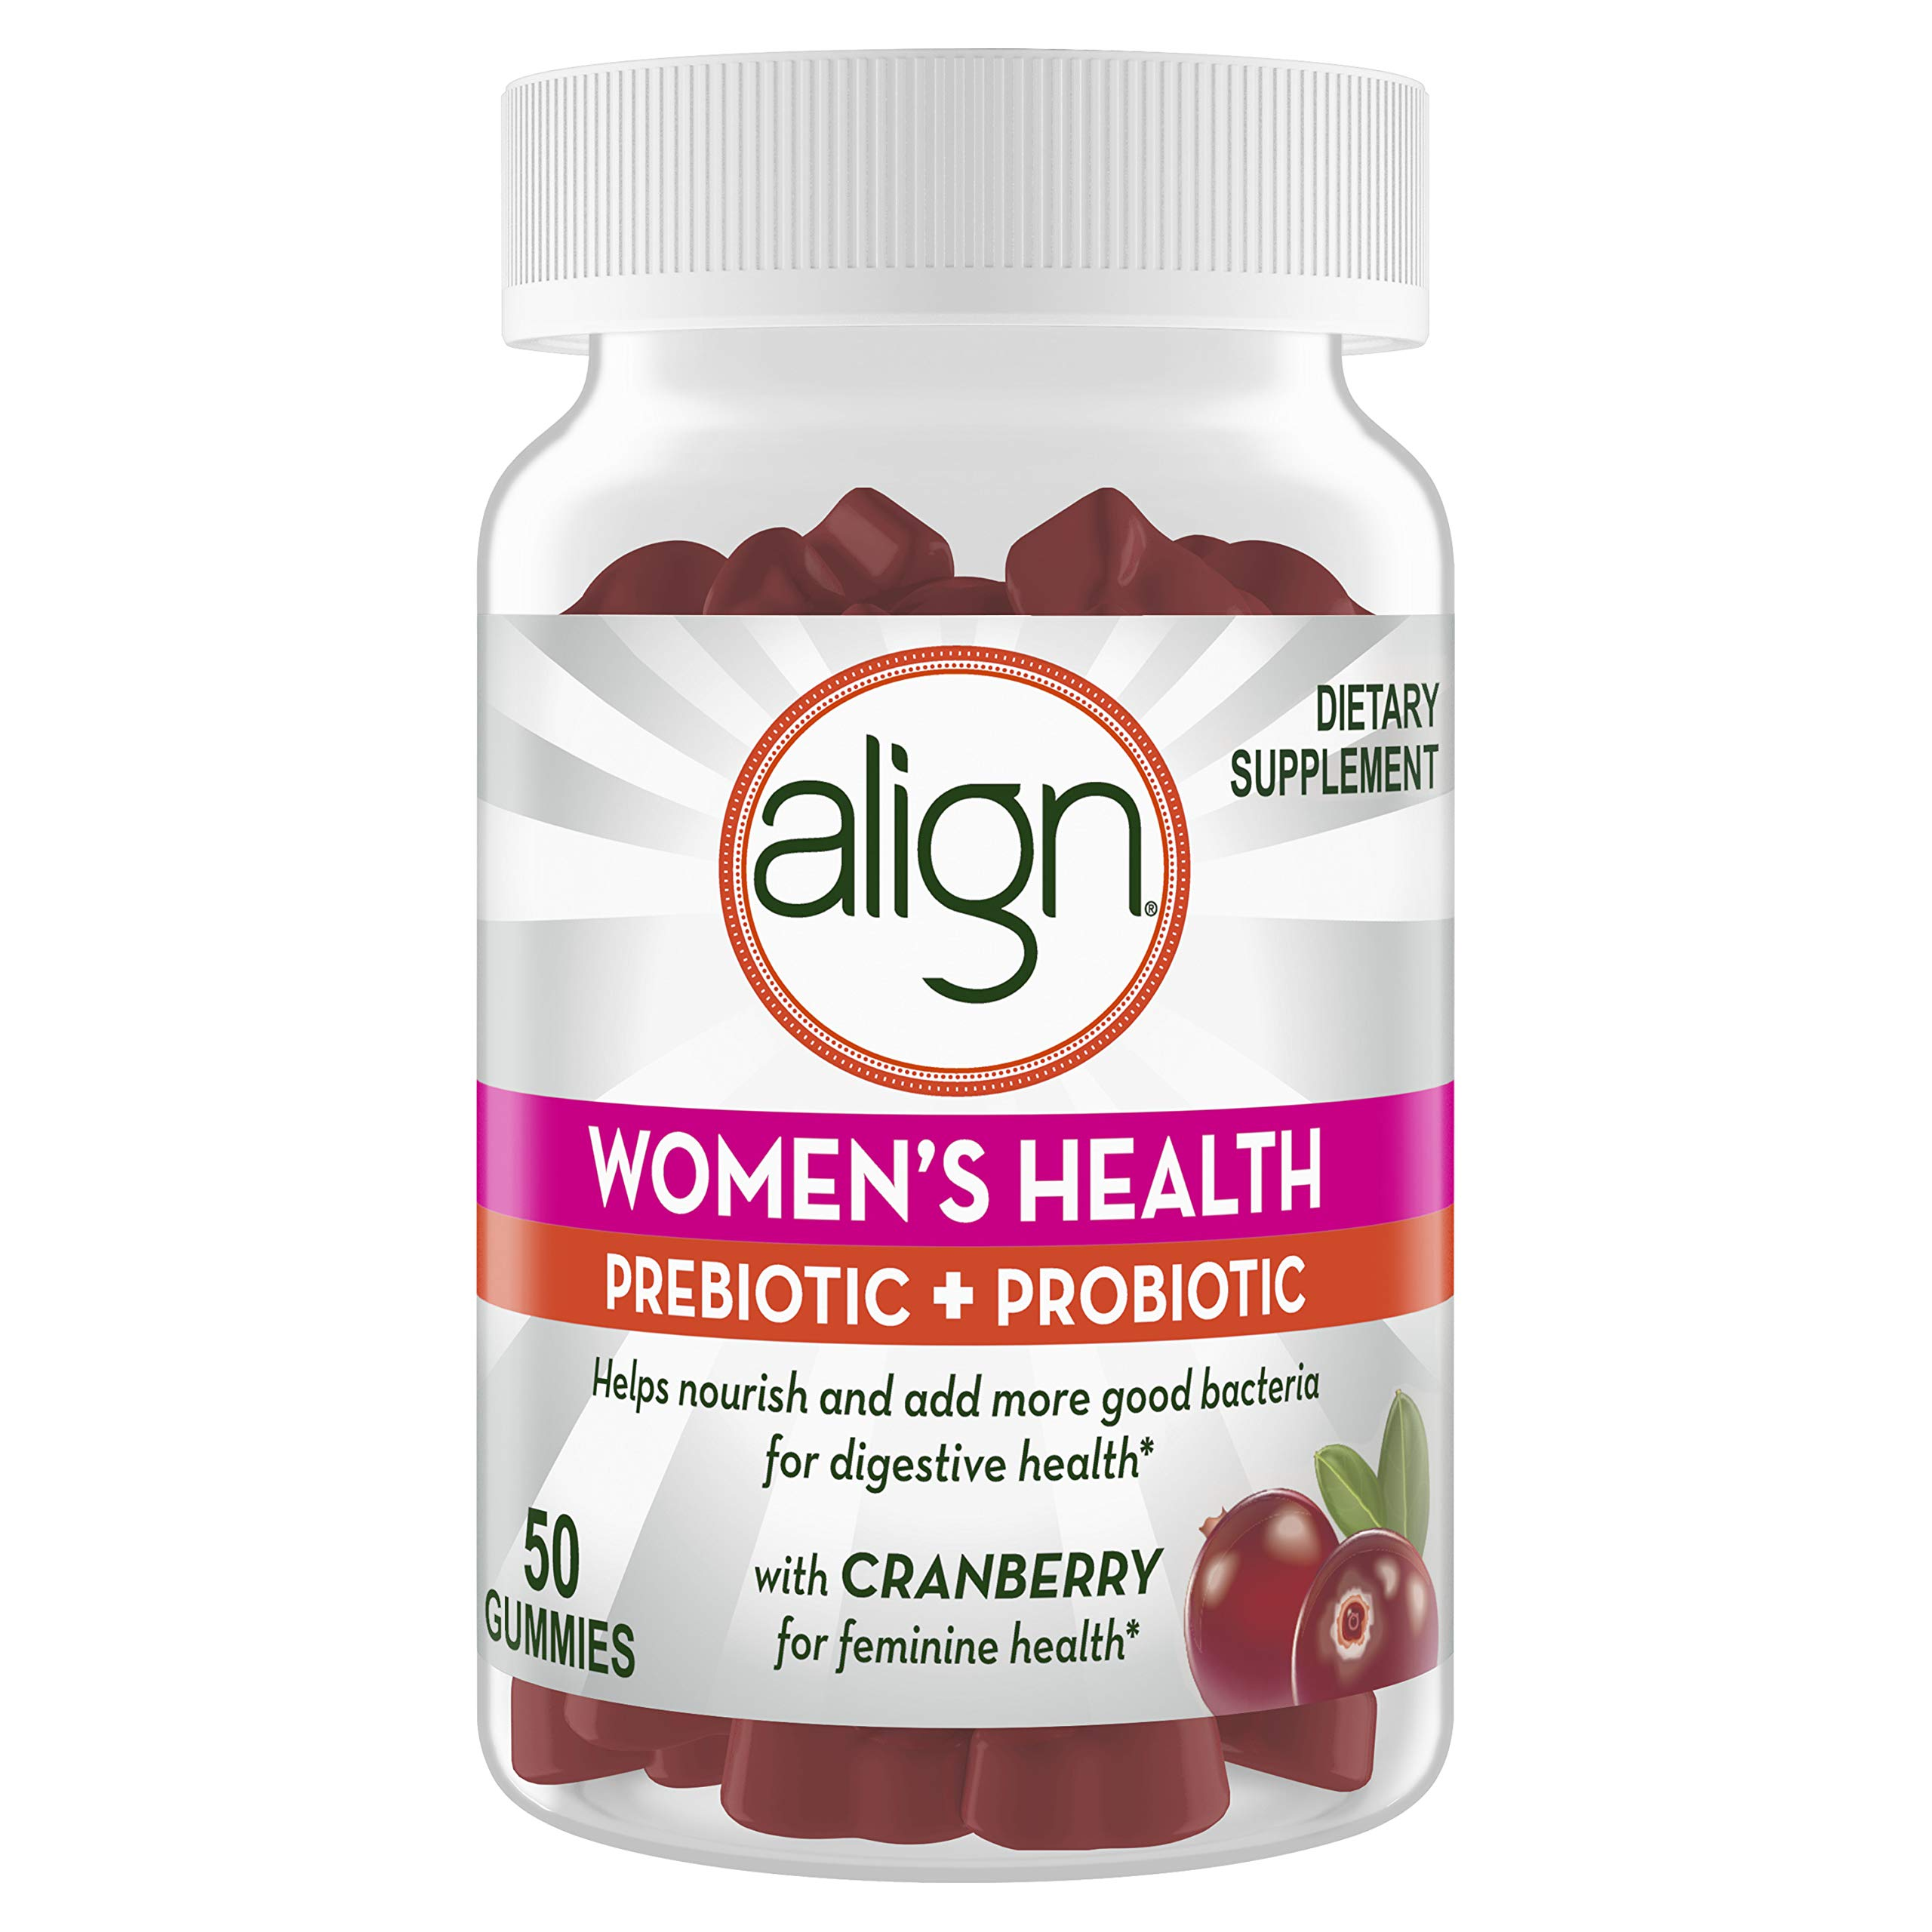 Align Women's Health, Prebiotic + Probiotic, Help Nourish & Add Good Bacteria for Digestive Health, with Cranberry for Feminine Health, 50 gummies